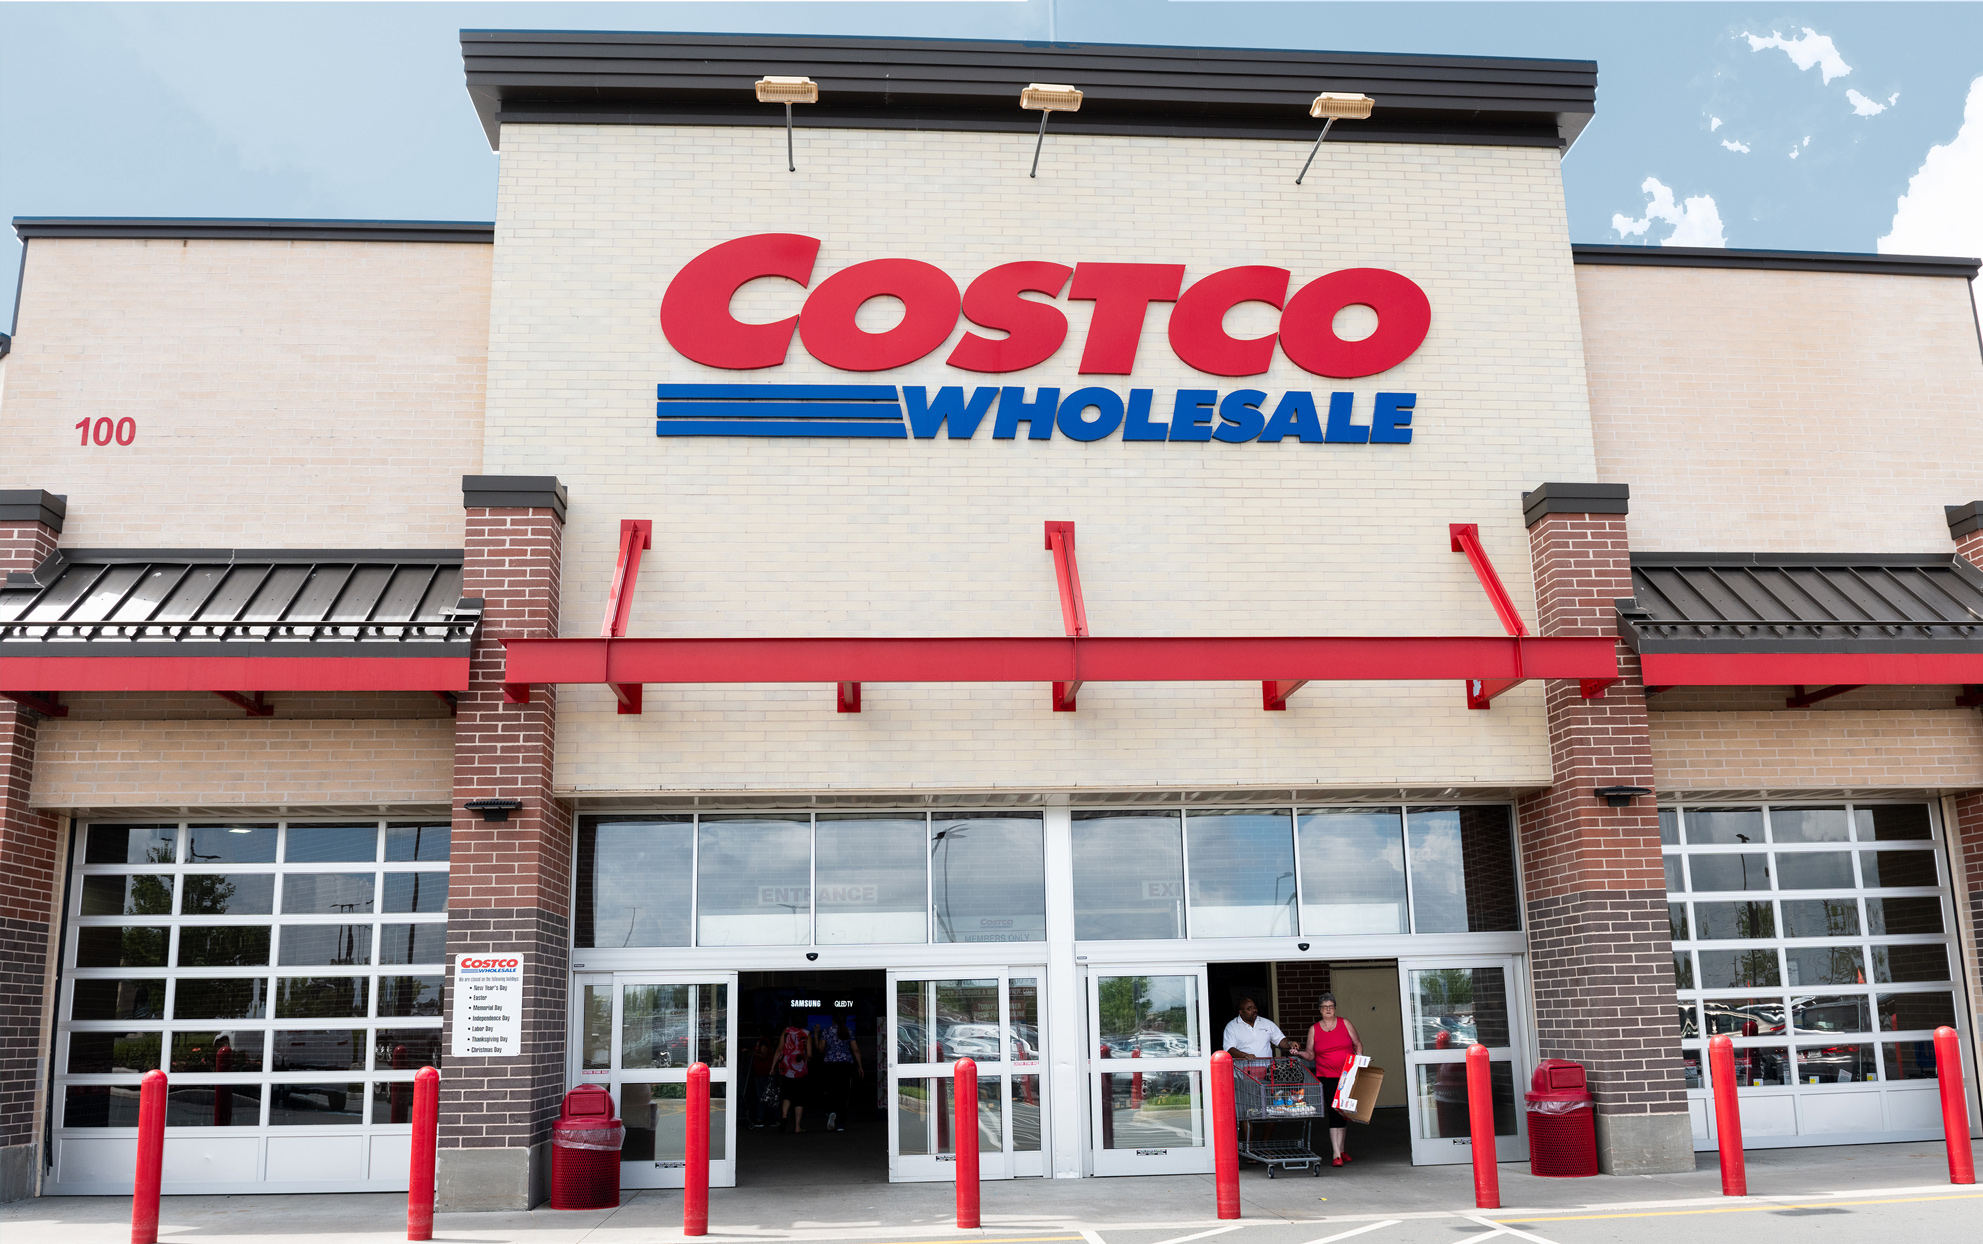 Costco storefront with customers exiting front door